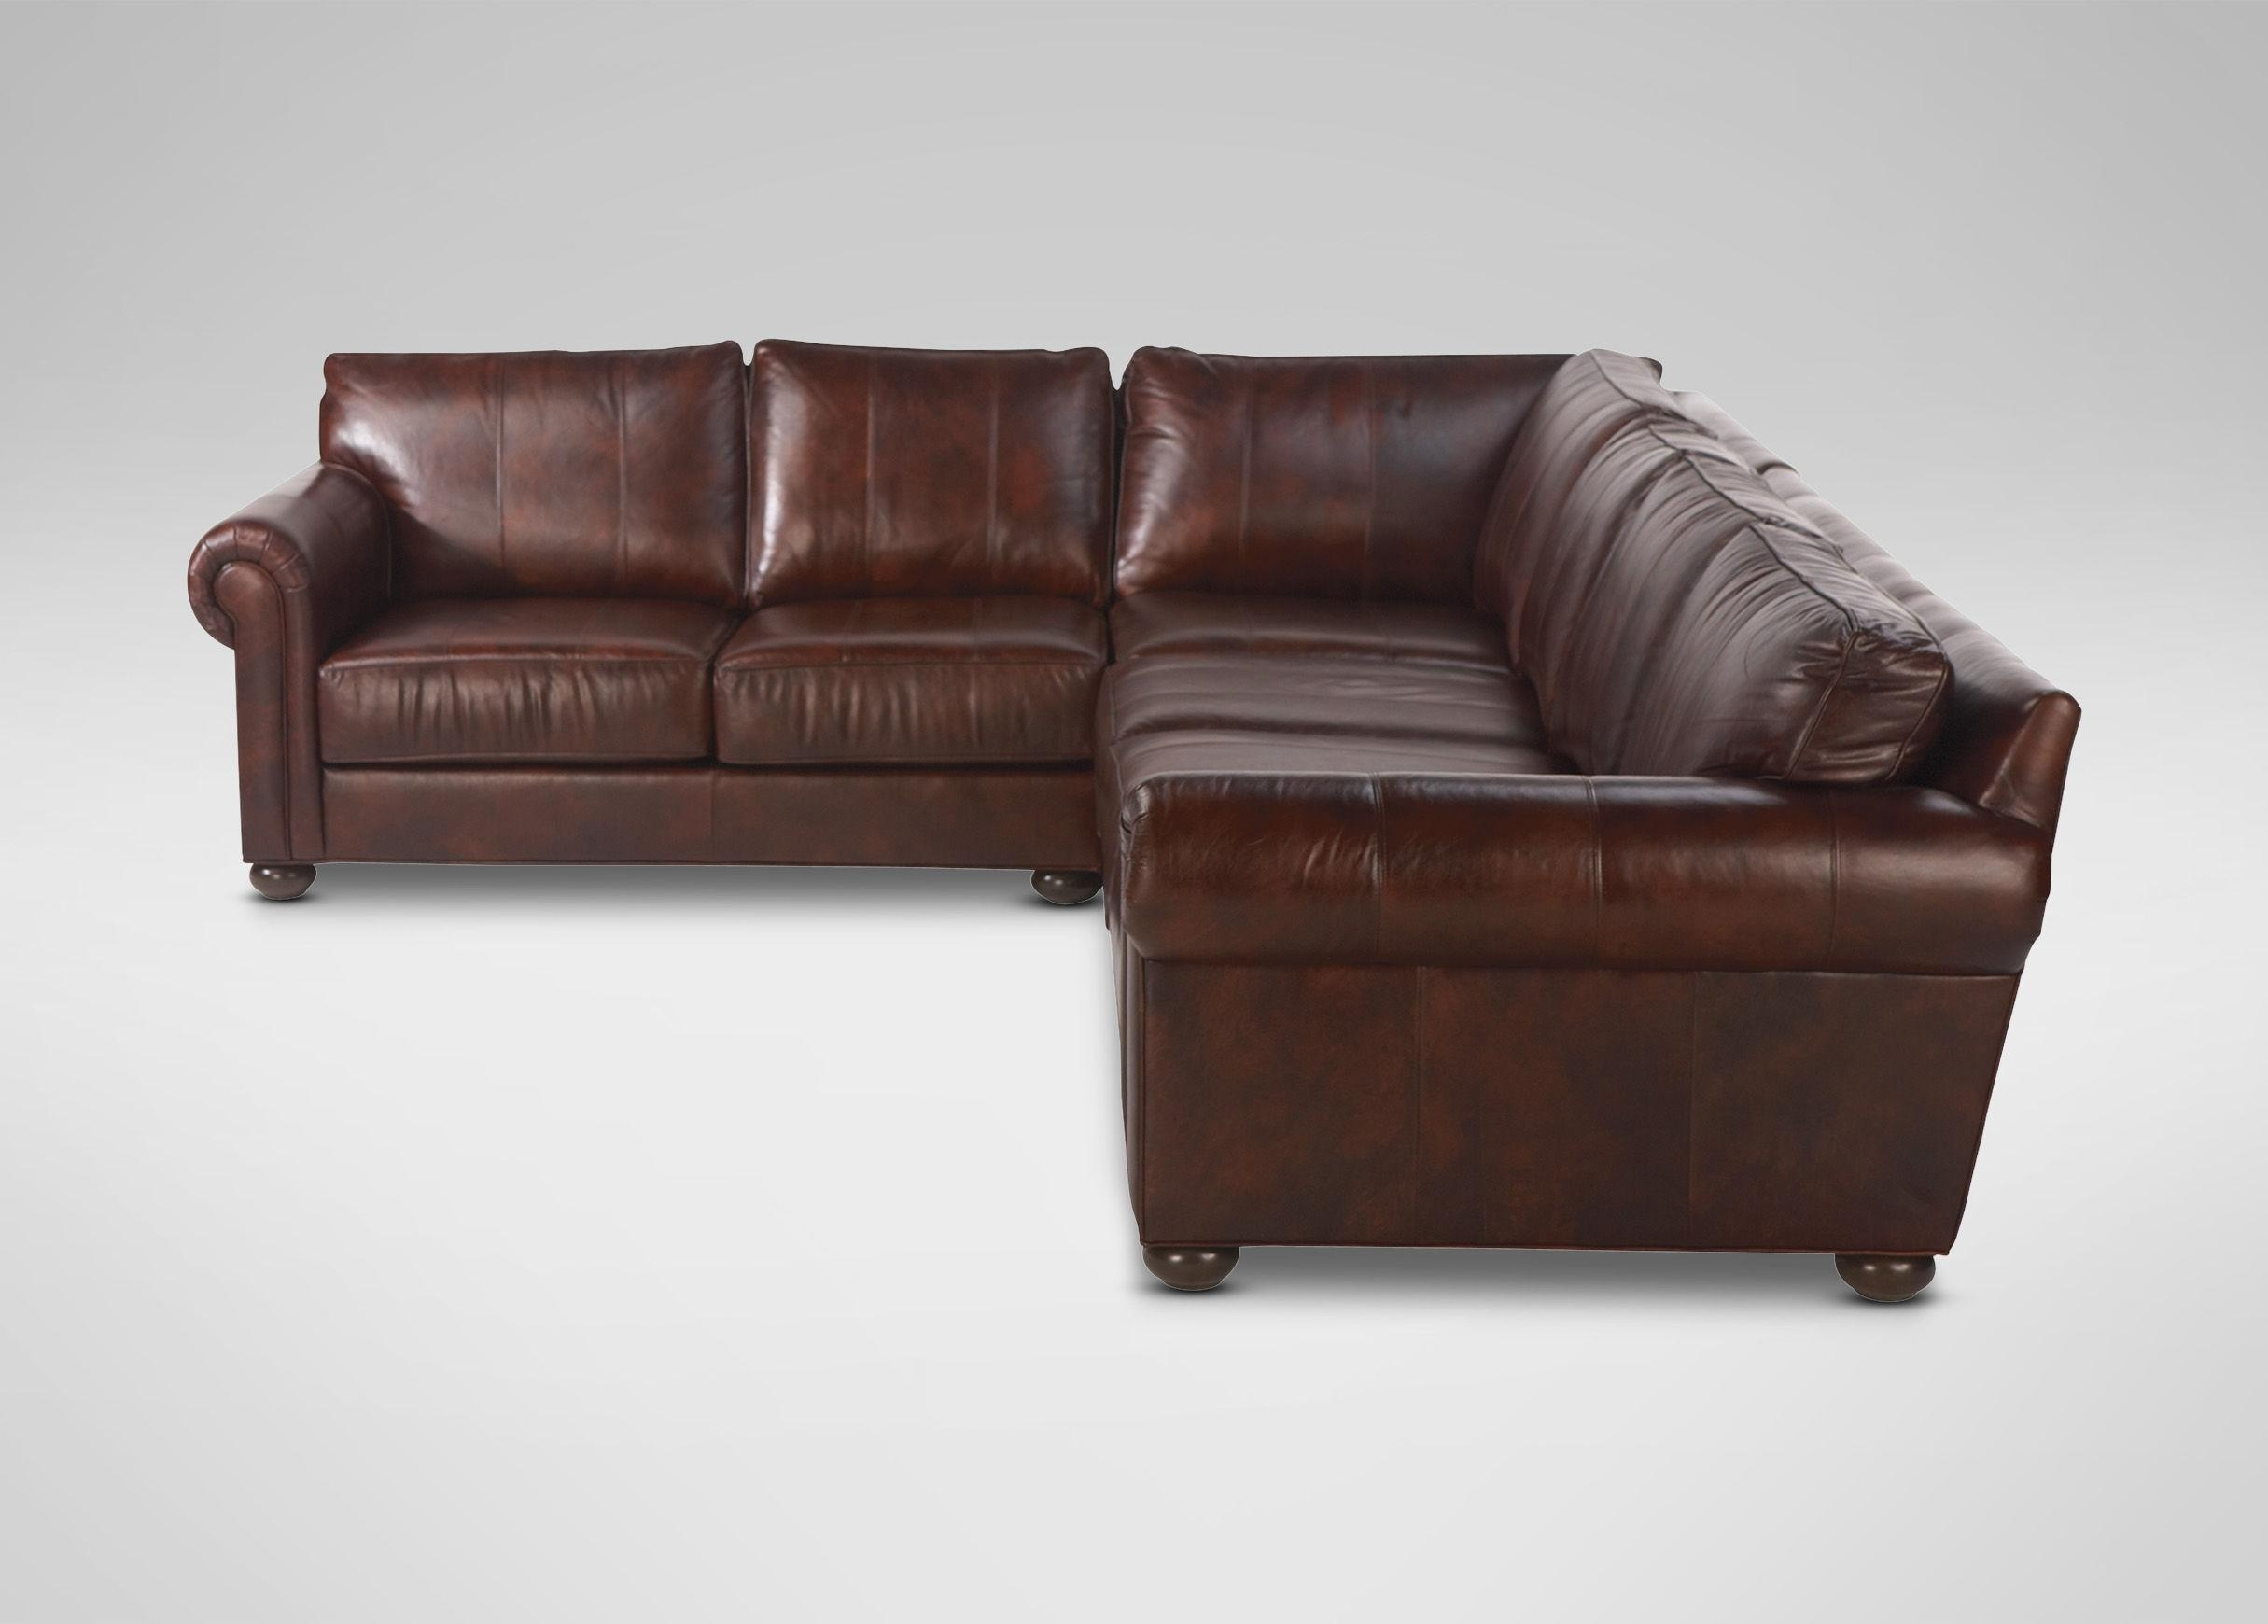 Decorating: Interesting Design Deep Sectional Sofa With Marvelous With Wide Seat Sectional Sofas (Image 5 of 20)